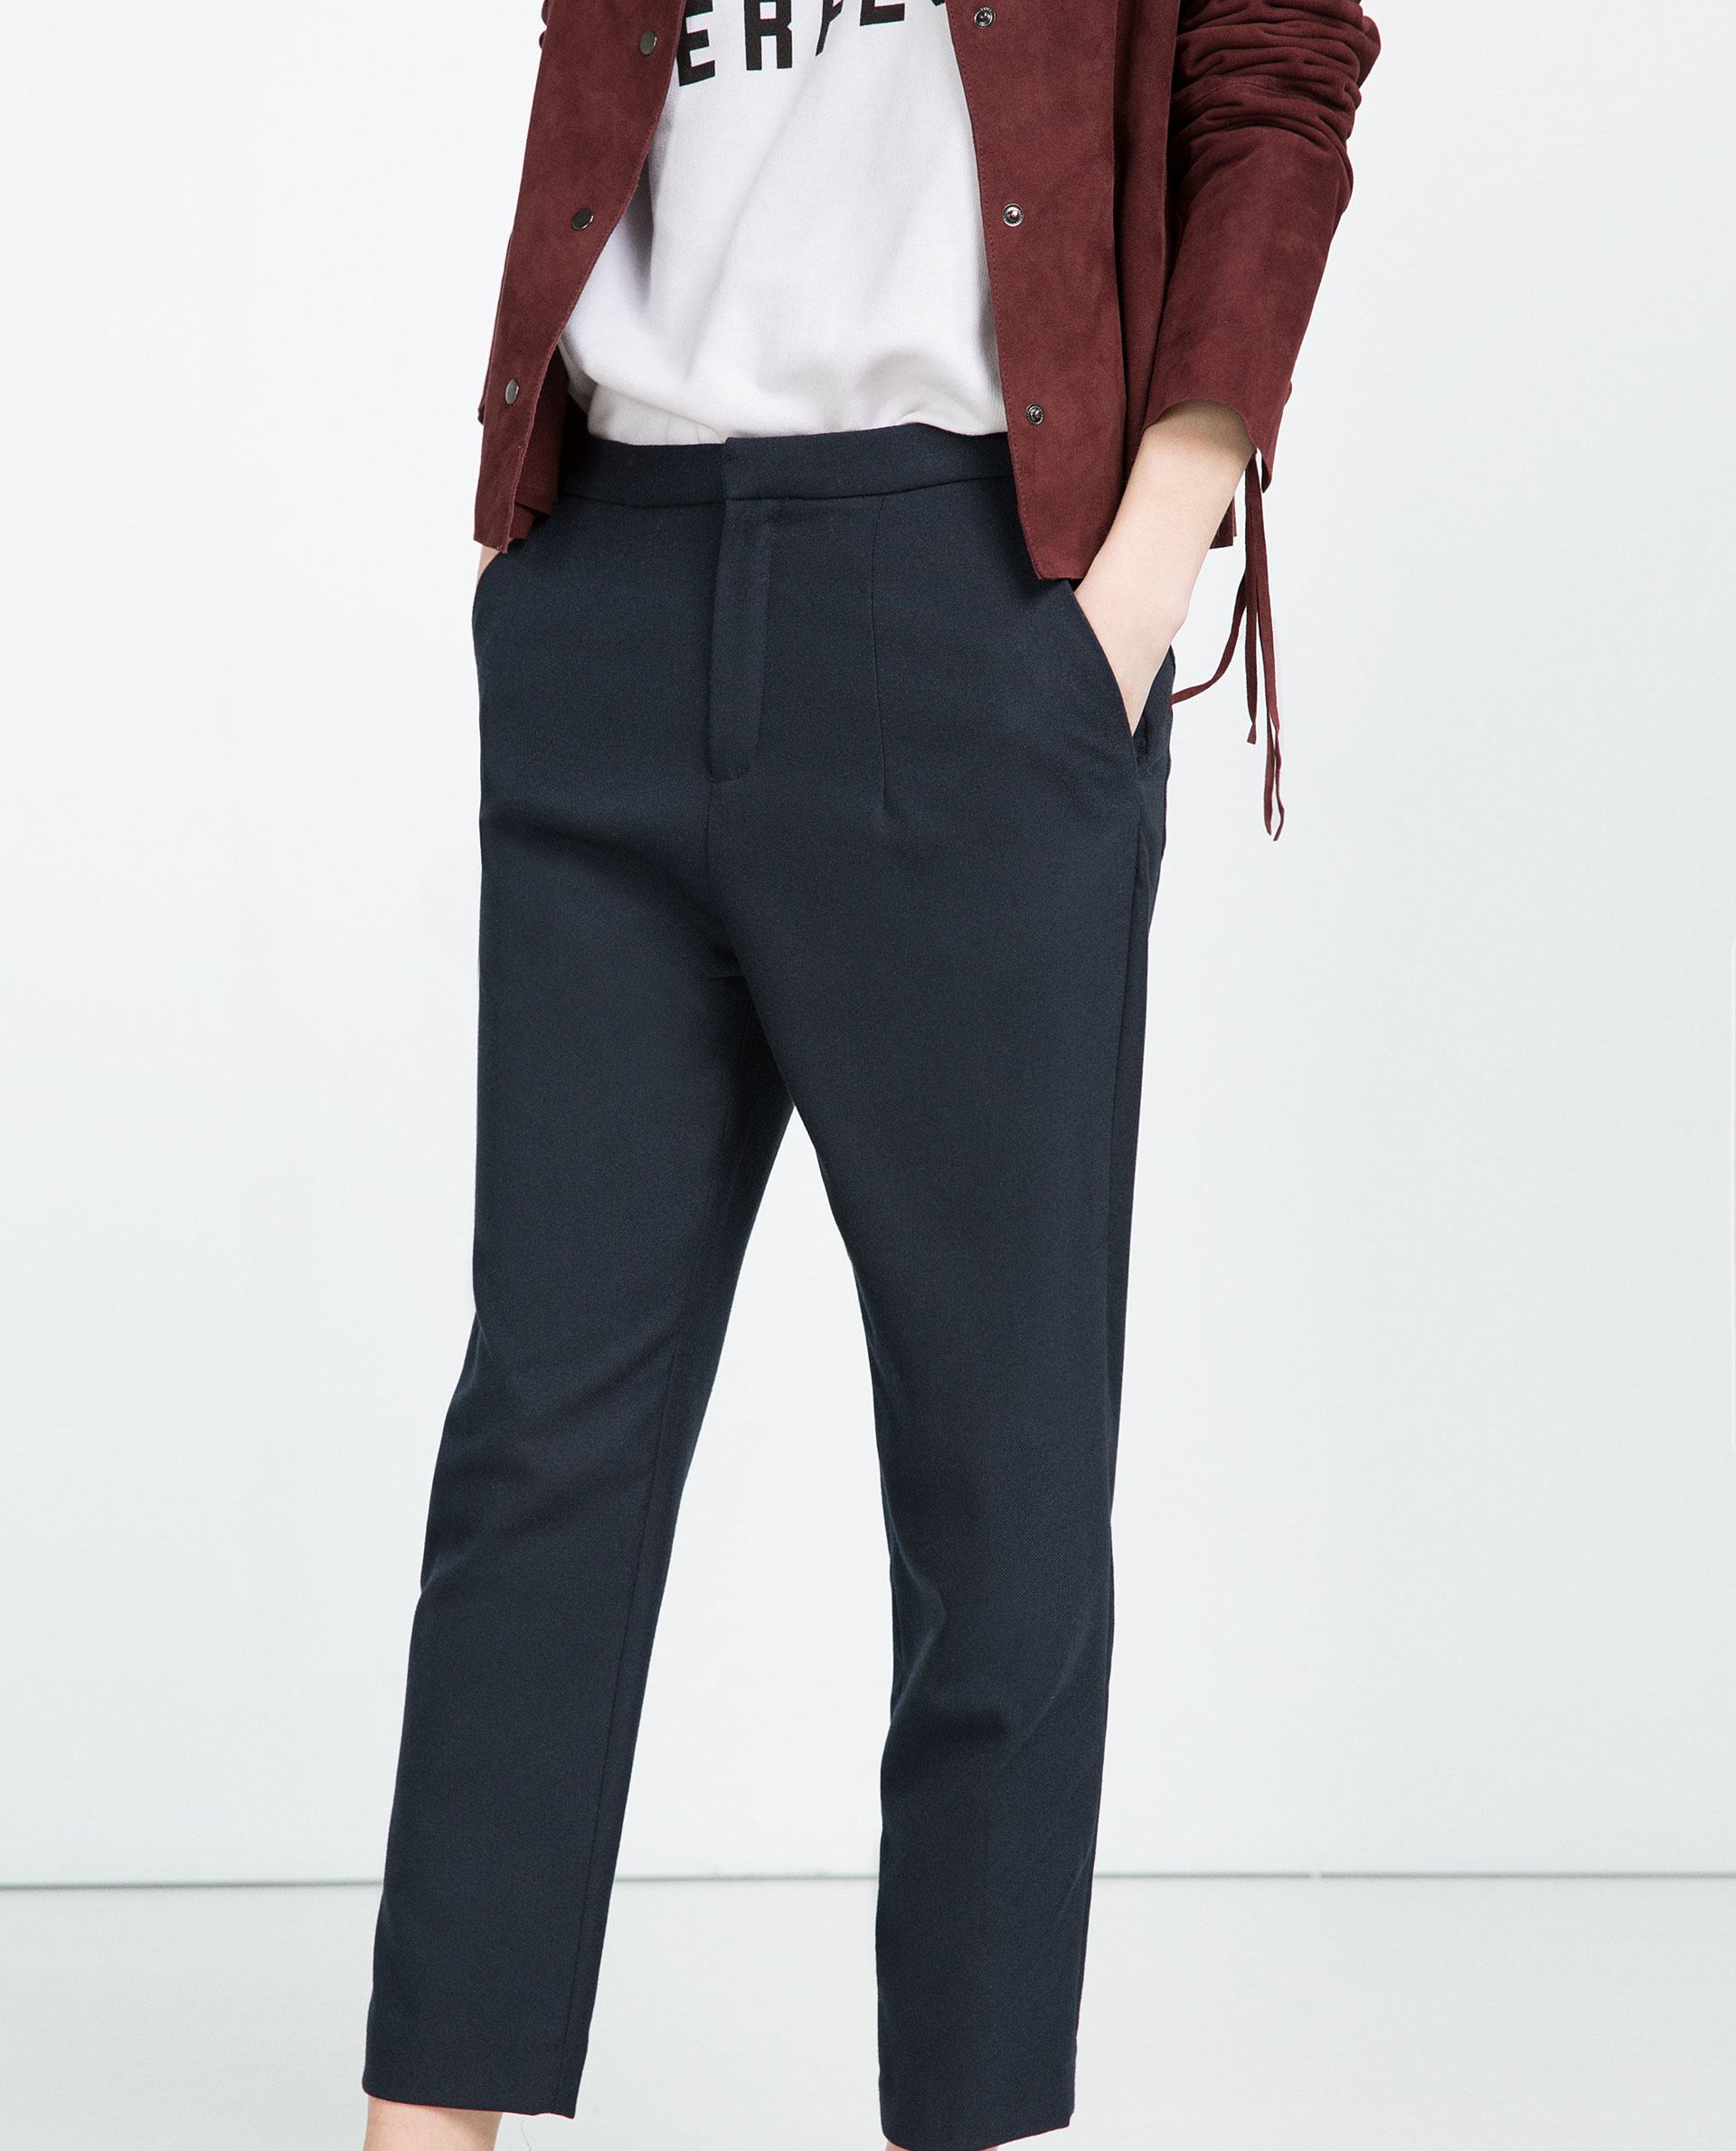 Fantastic Zara Herringbone Trousers $100 For Women Who Have A Fuller Midsection  Of Garner Style Hit The Nail On The Head With These Silky Drawstring Pants Mango Violeta Printed Baggy Trousers $90 Teeny Frame? No Problem! Go For Straight